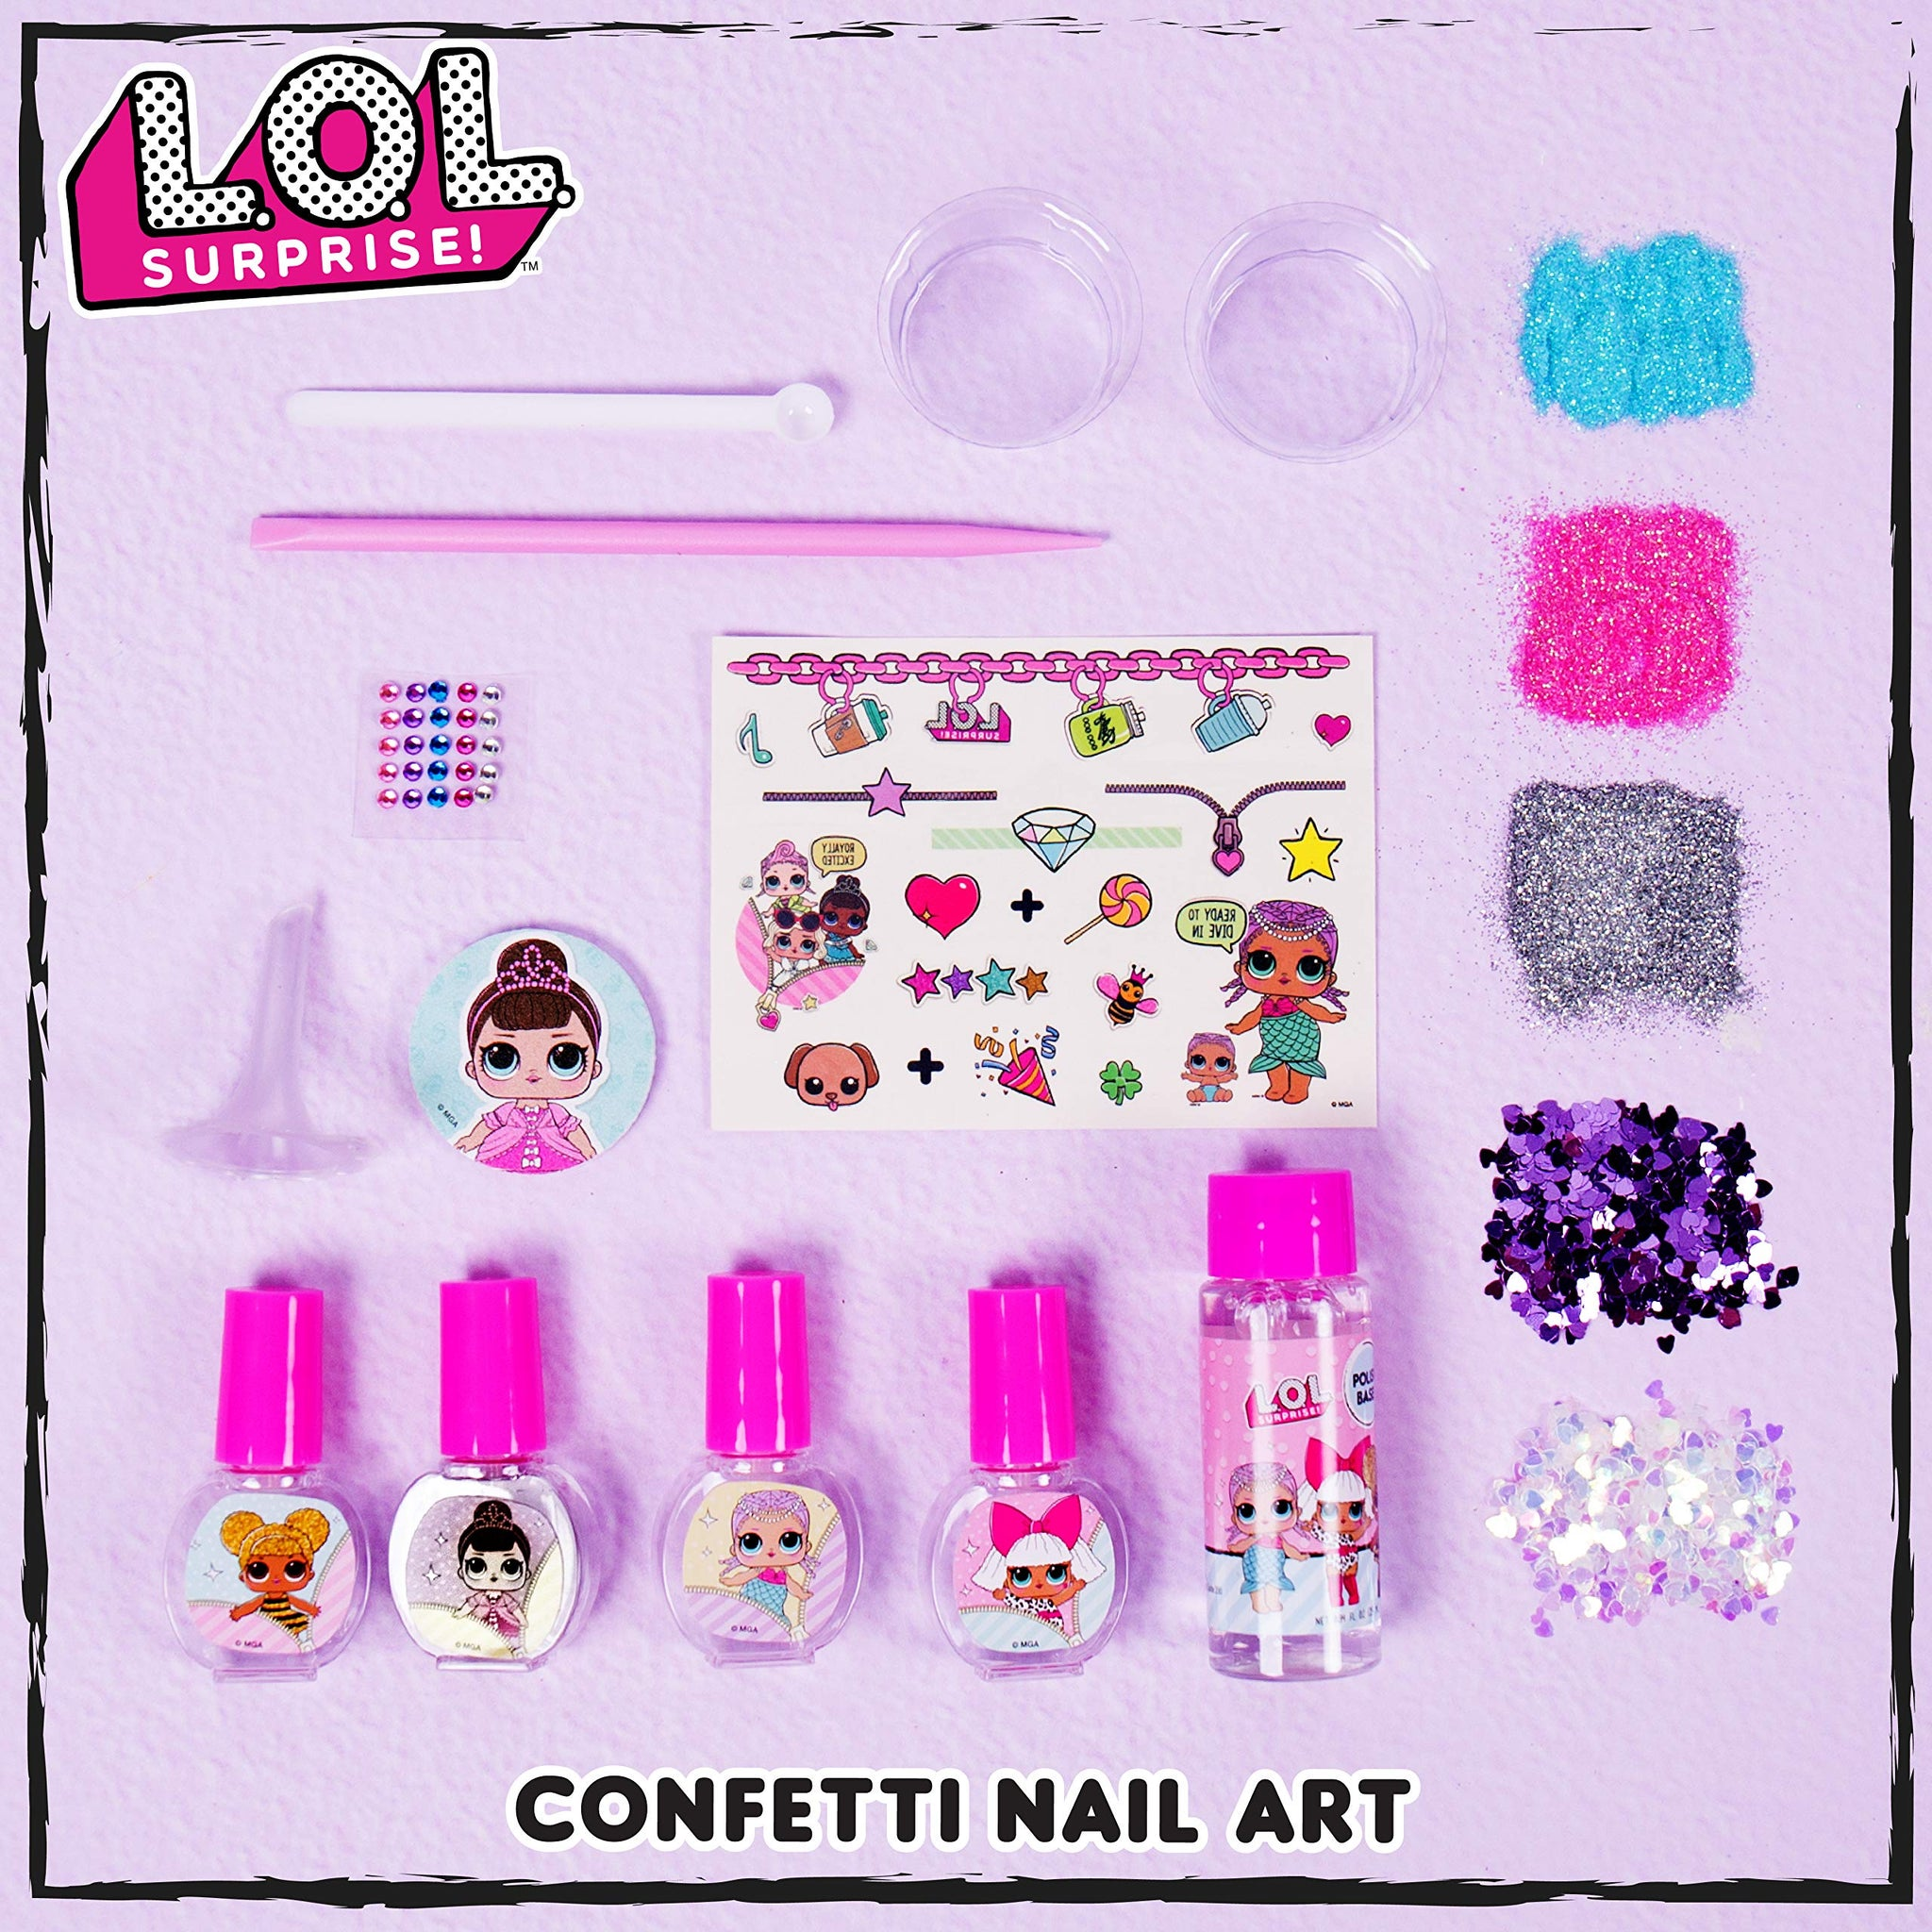 L.O.L. Surprise! Confetti Nail Art by Horizon Group USA, Make Your Own Nail Polish by Adding Glitter, Confetti, Gemstones & More